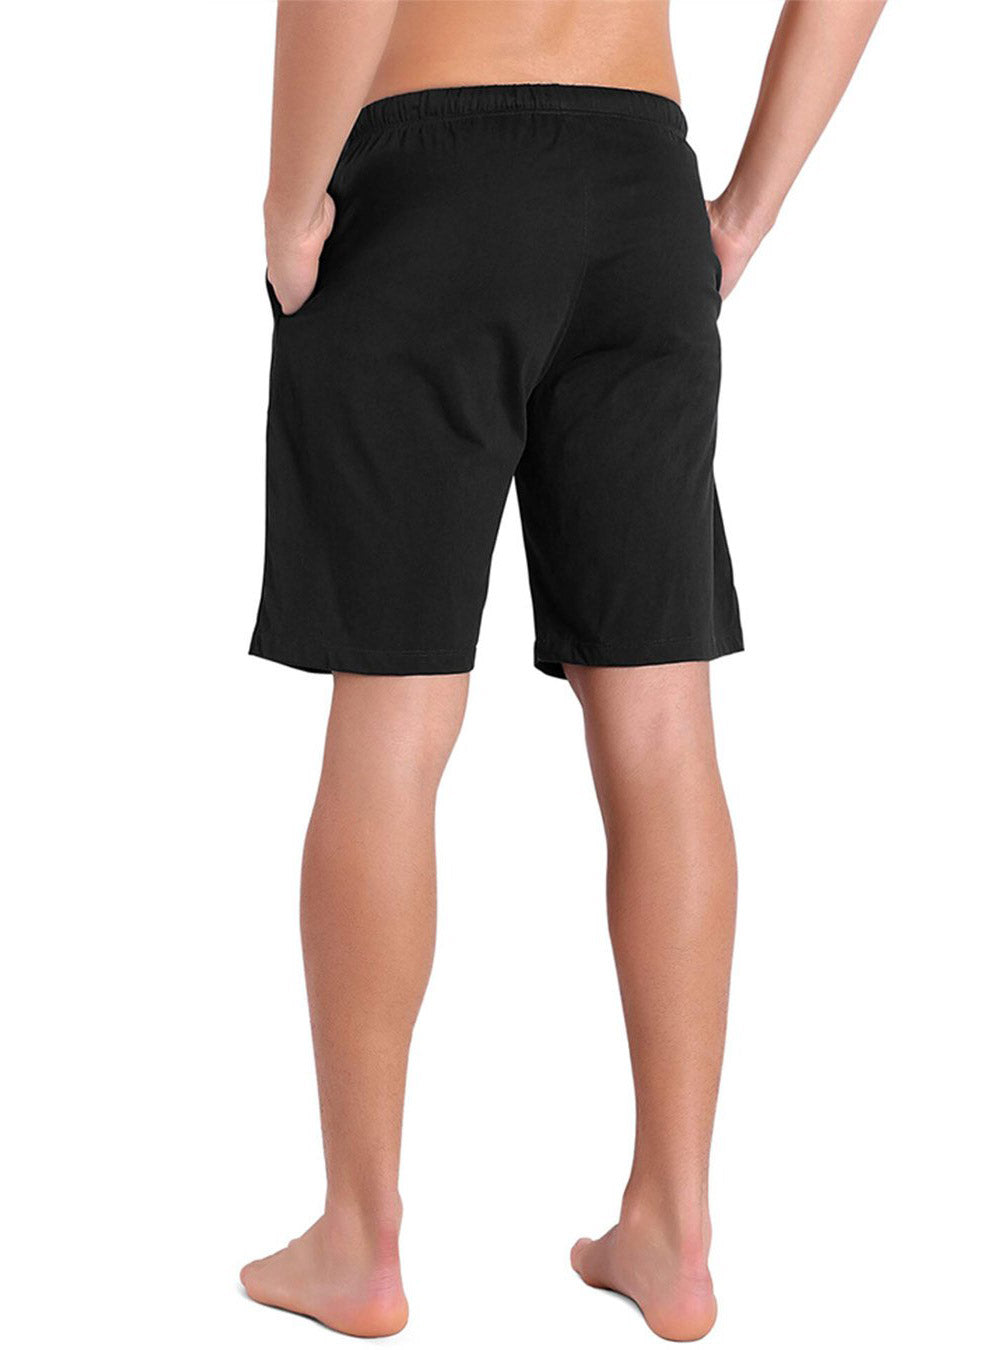 Soft Comfy Cotton Knit Sleep Shorts